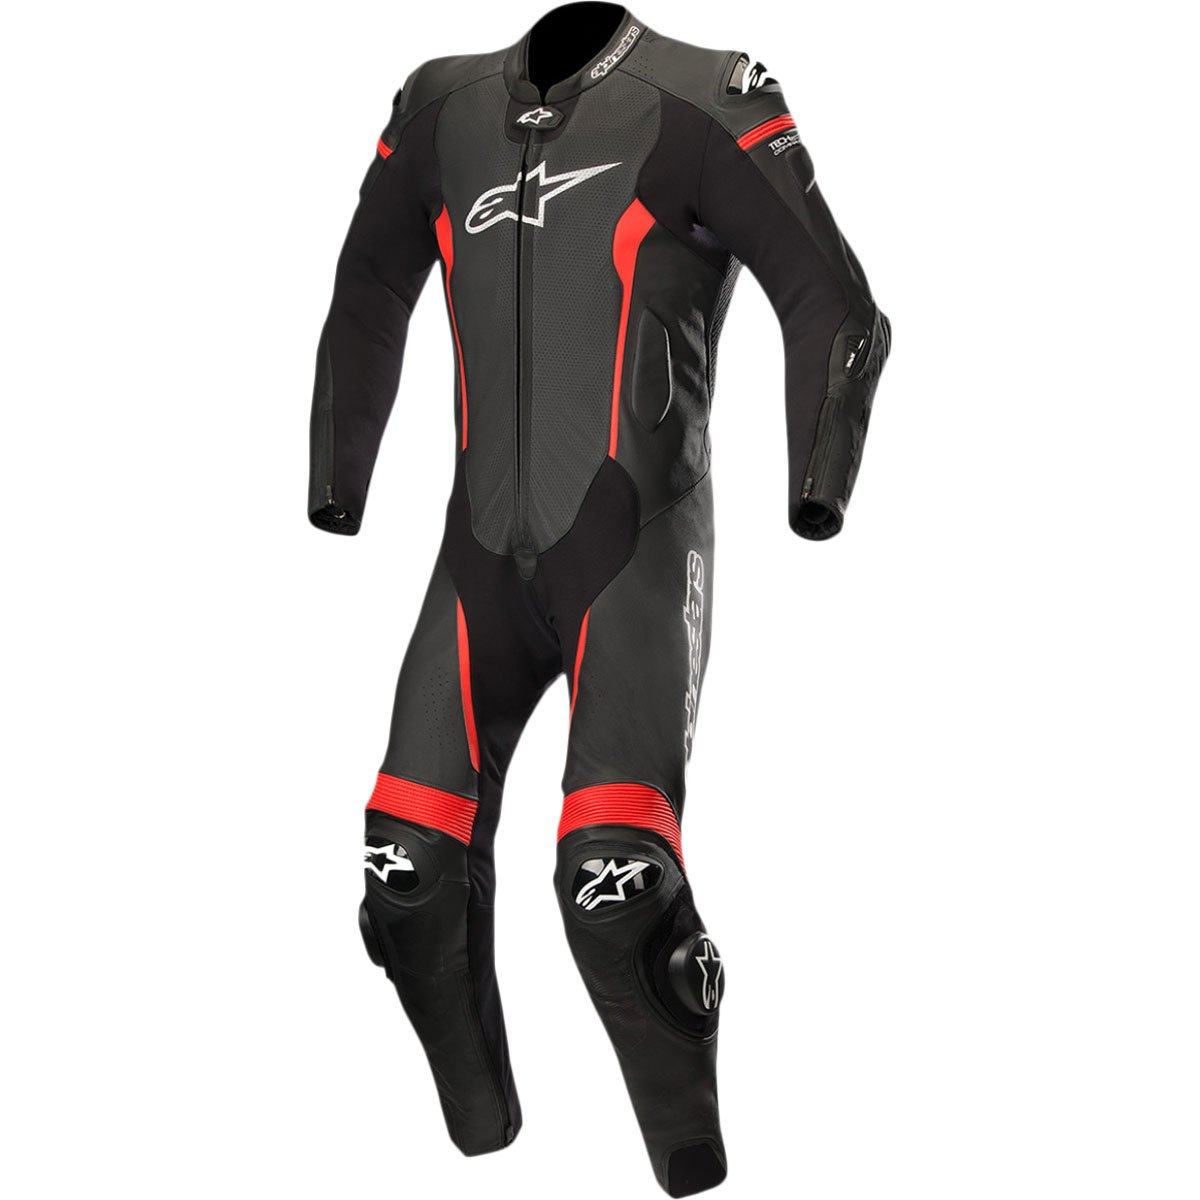 Alpinestars Missile Men's 1-Piece Street Race Suits - Black/Red / 56